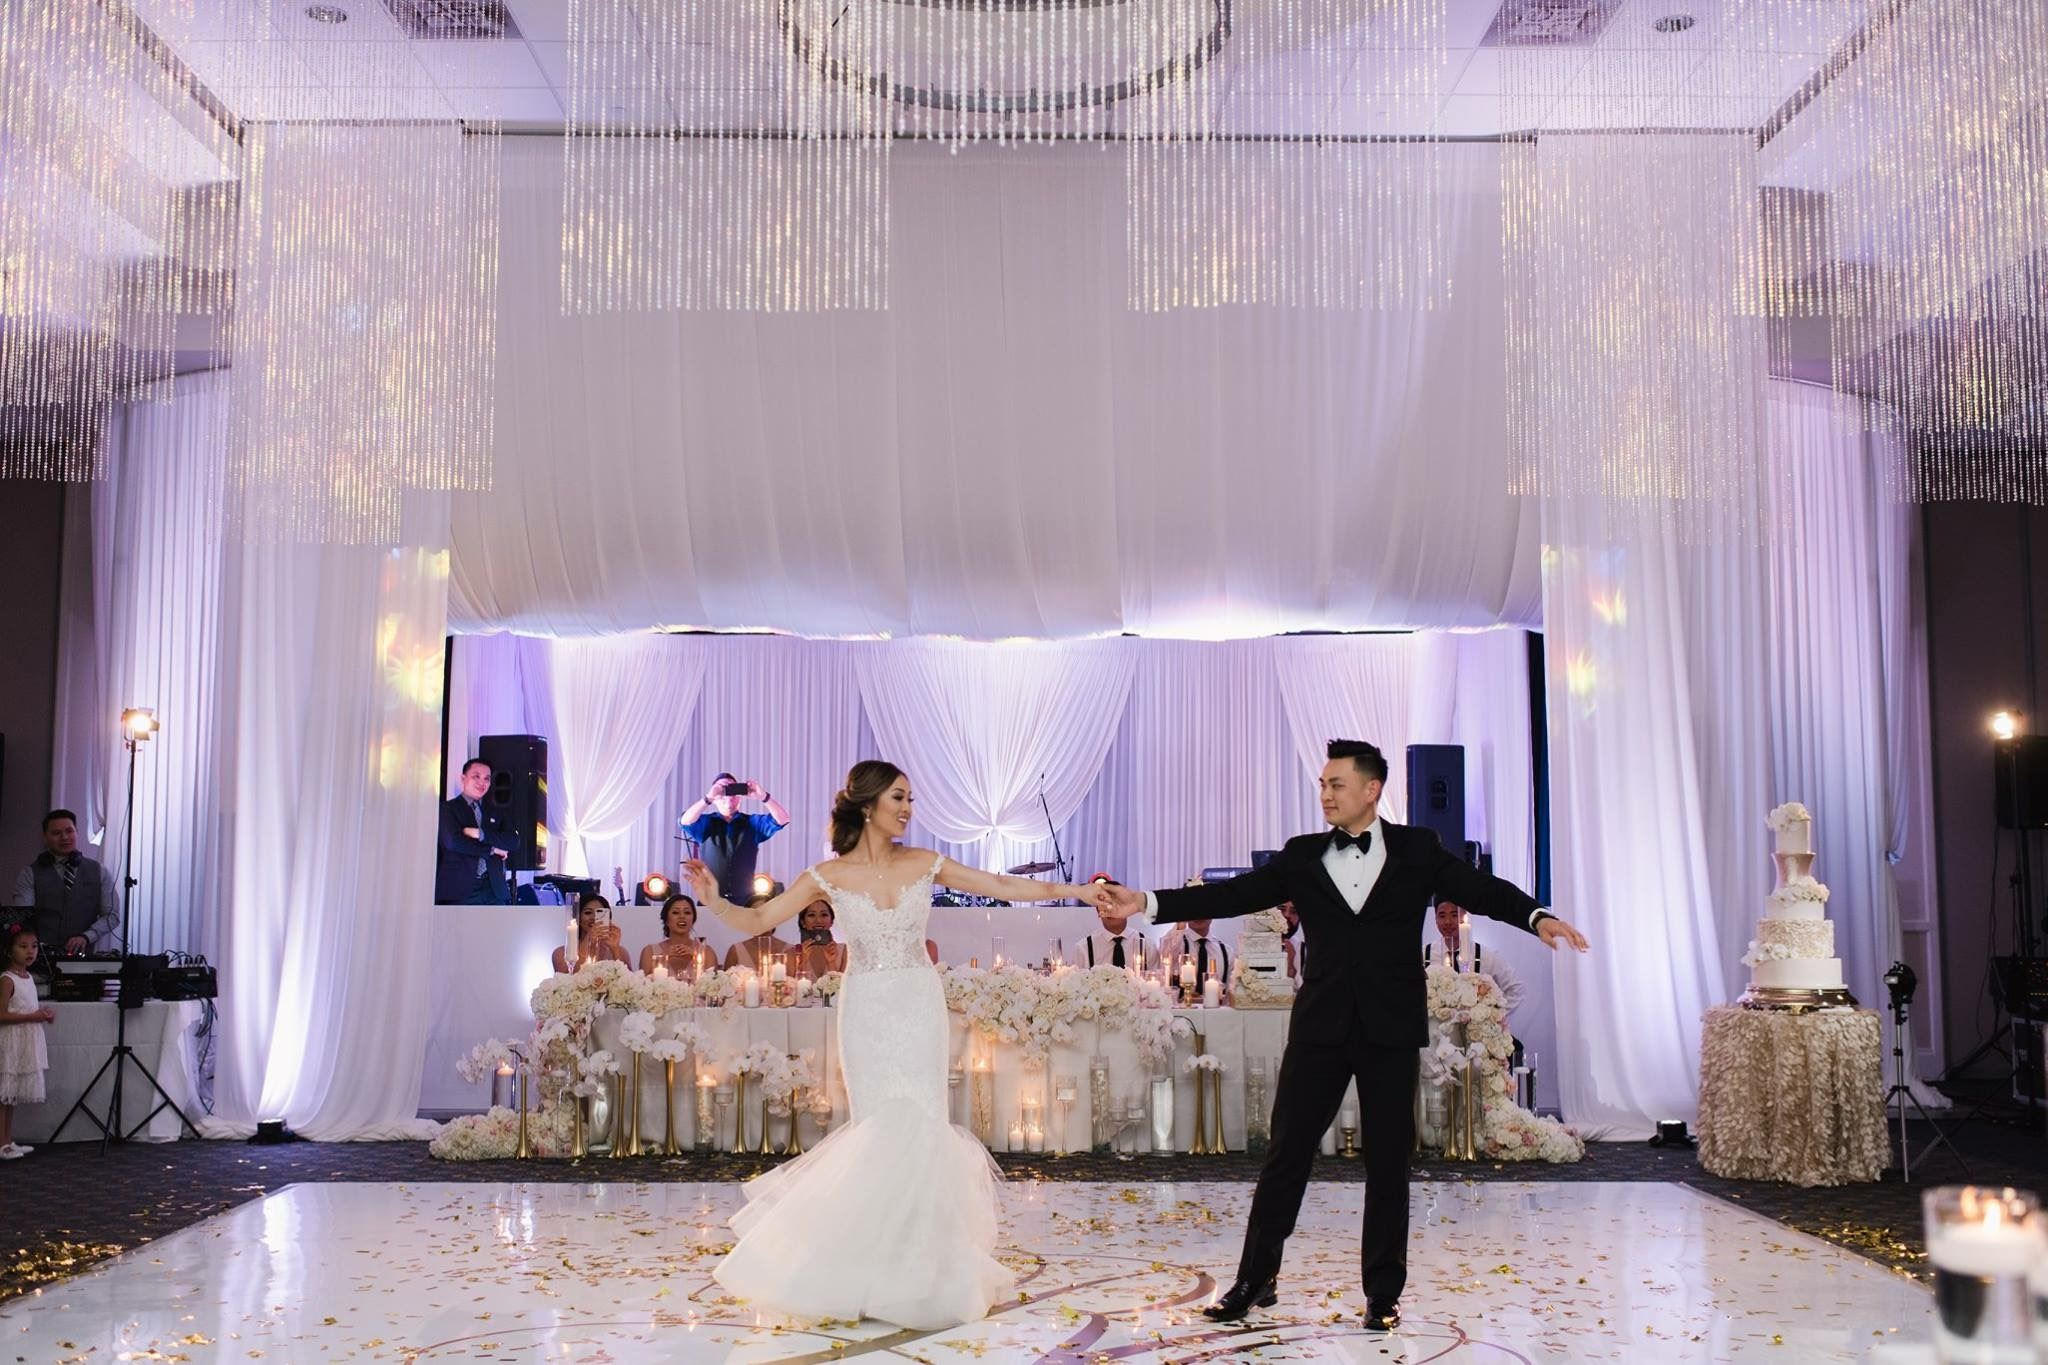 A bride and groom dance